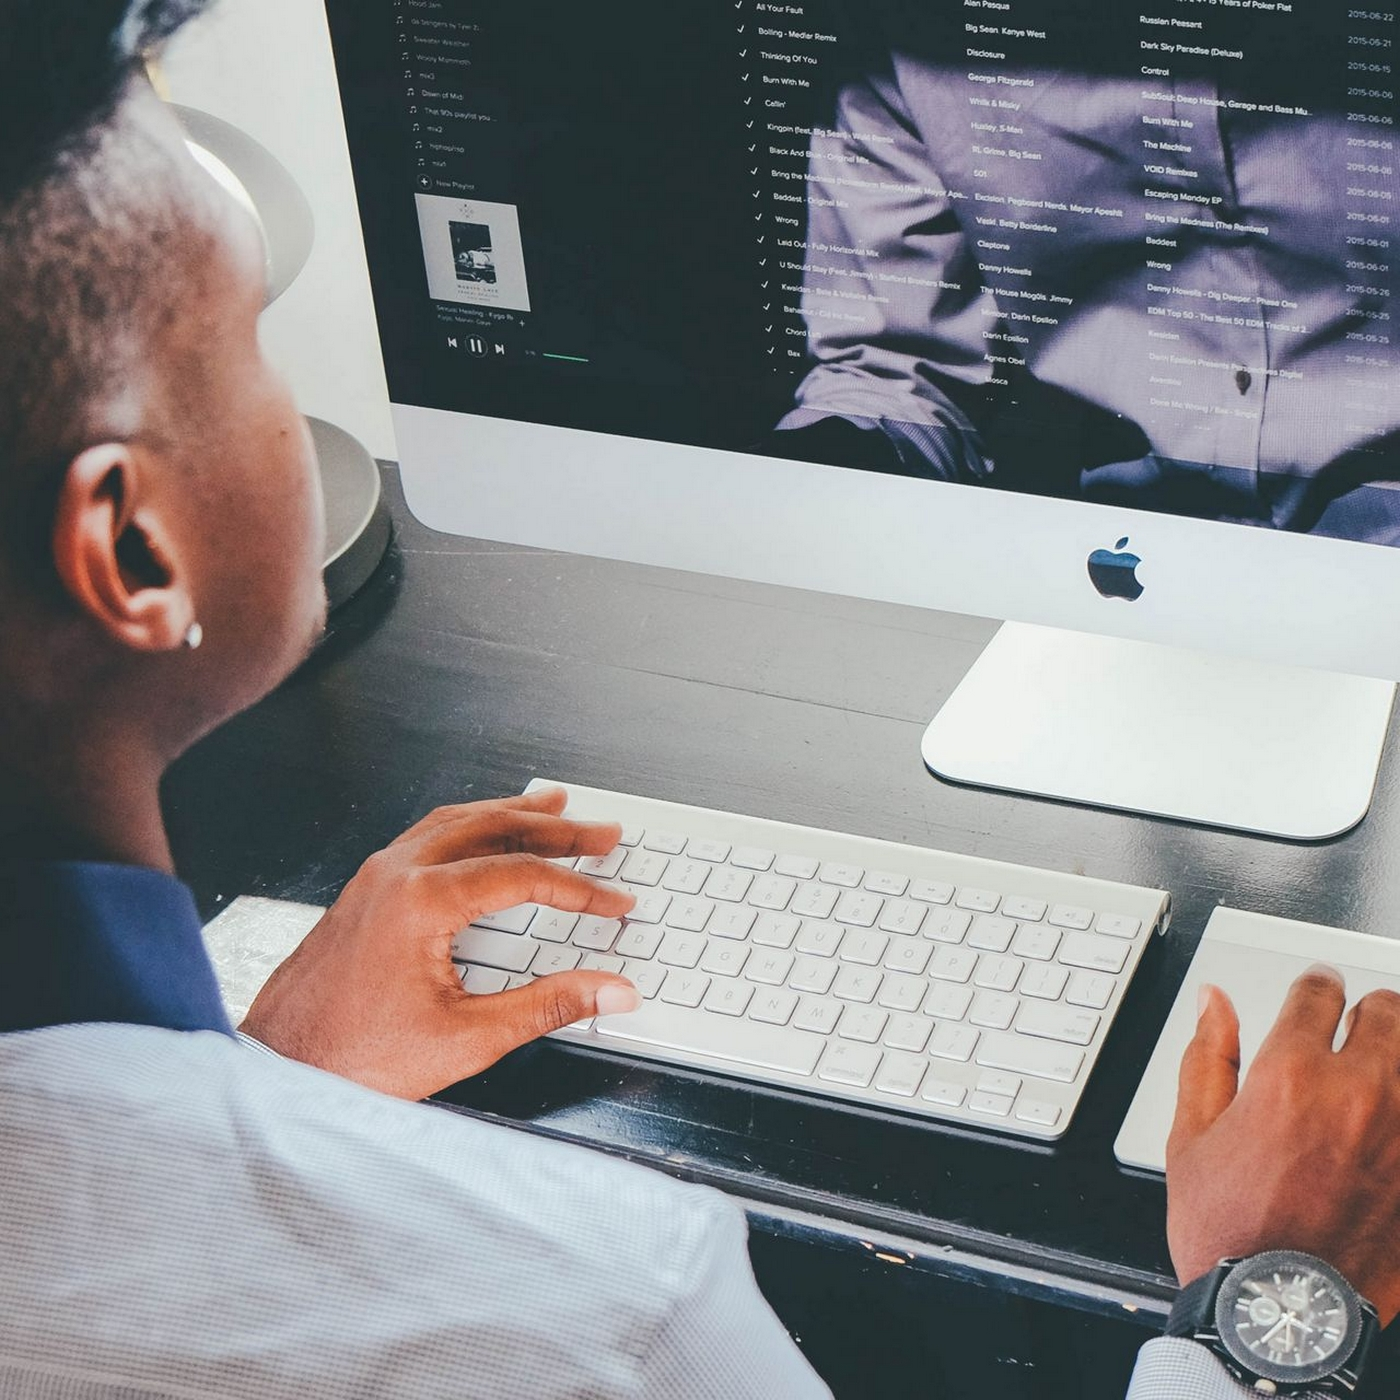 Image of a man working on his desktop